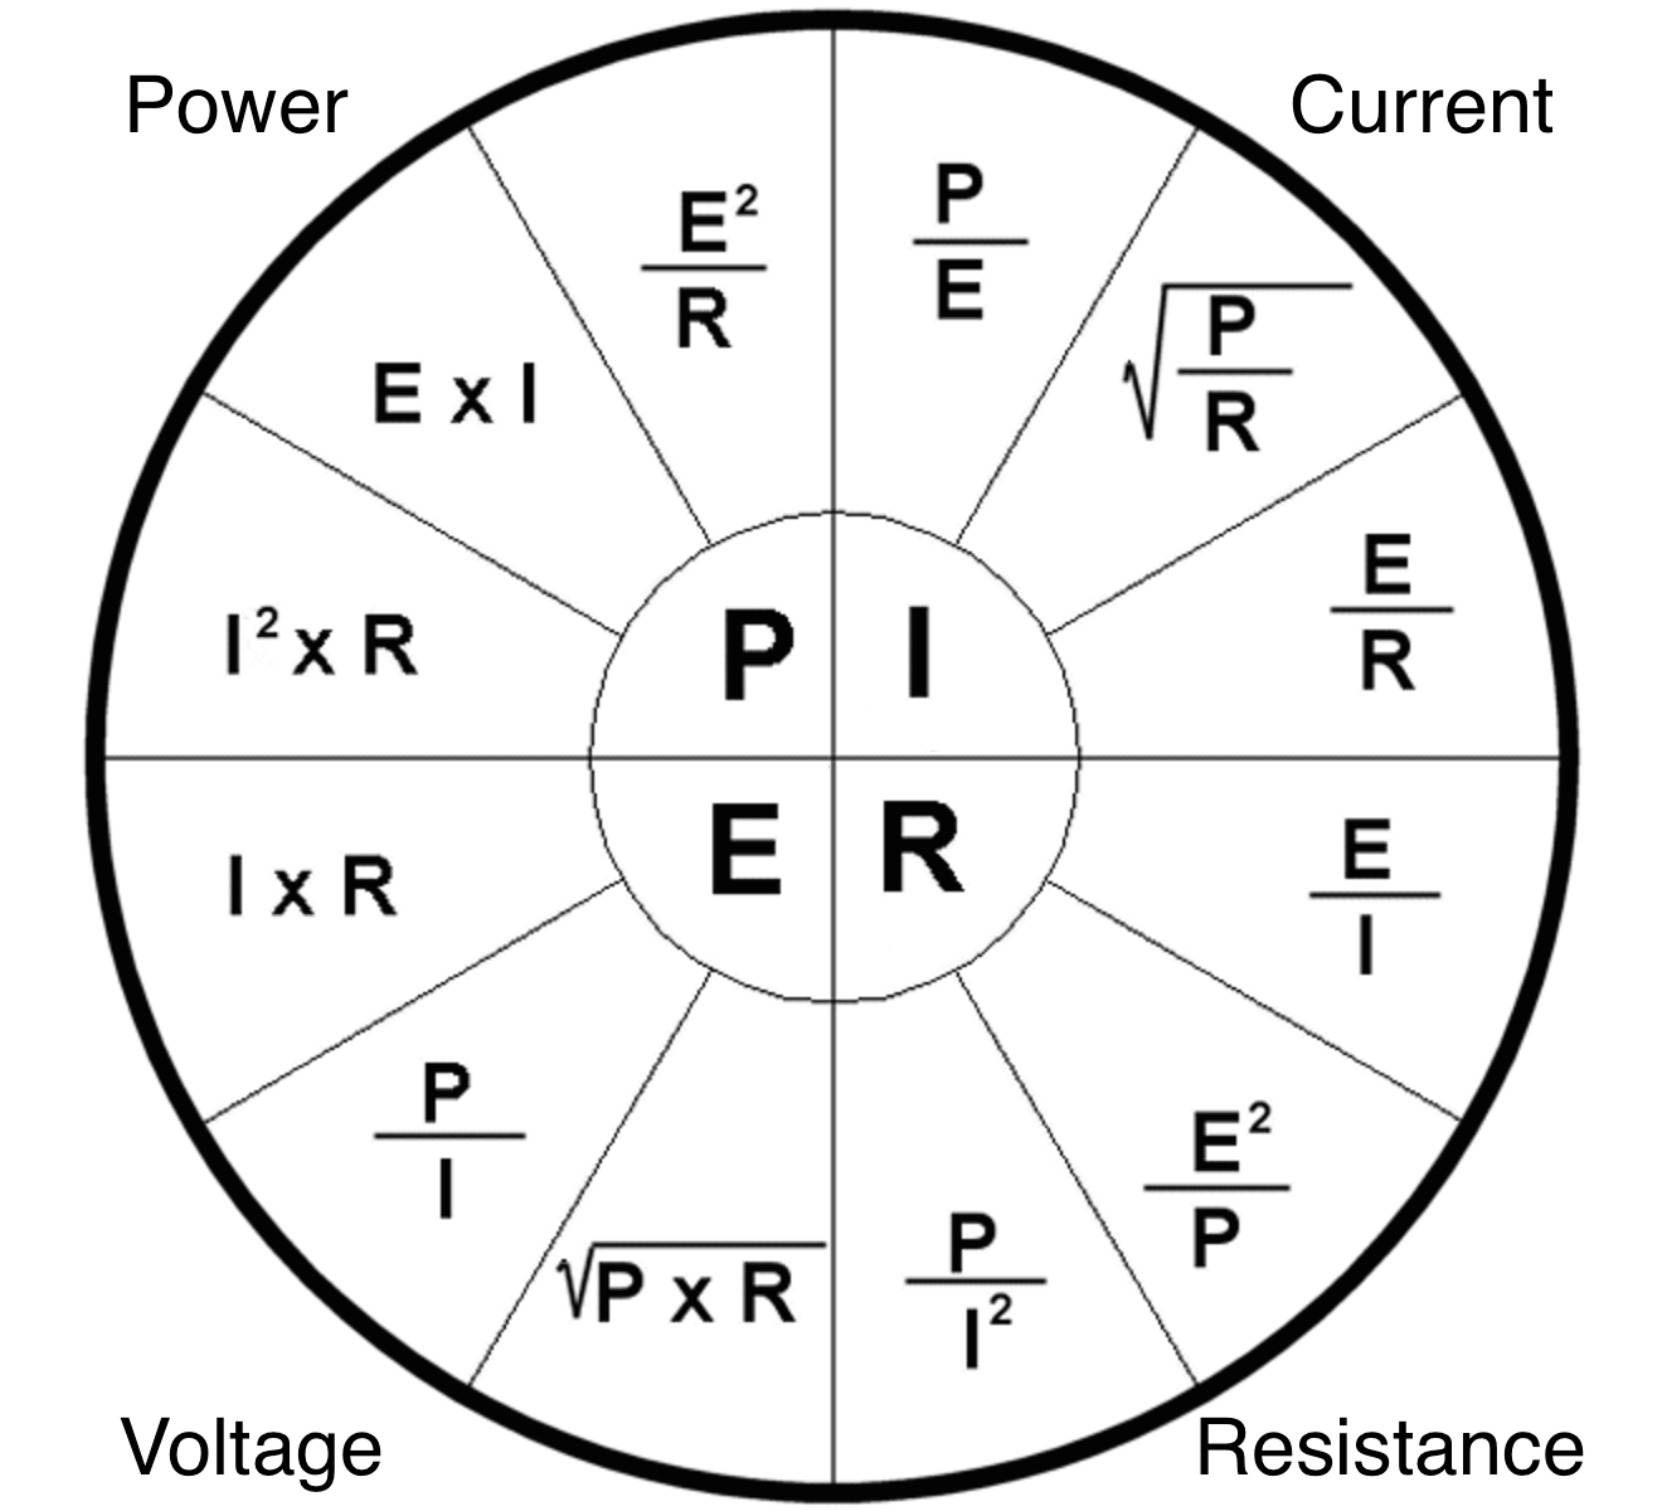 hight resolution of chart showing all the formulas to find volts watts amps and ohms using the ohm s law and watt s law